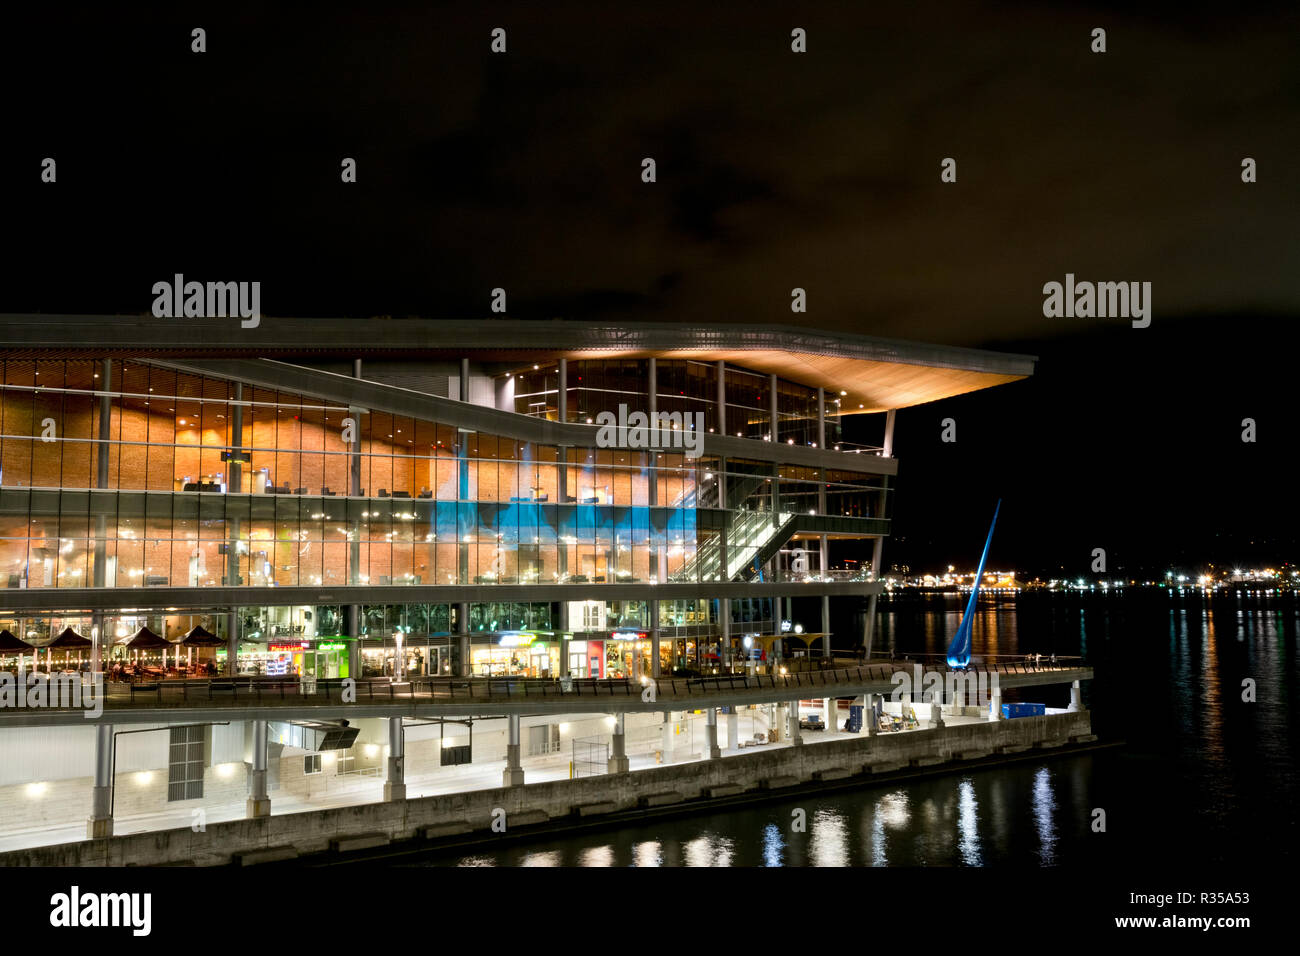 Vancouver Convention Centre at night. - Stock Image